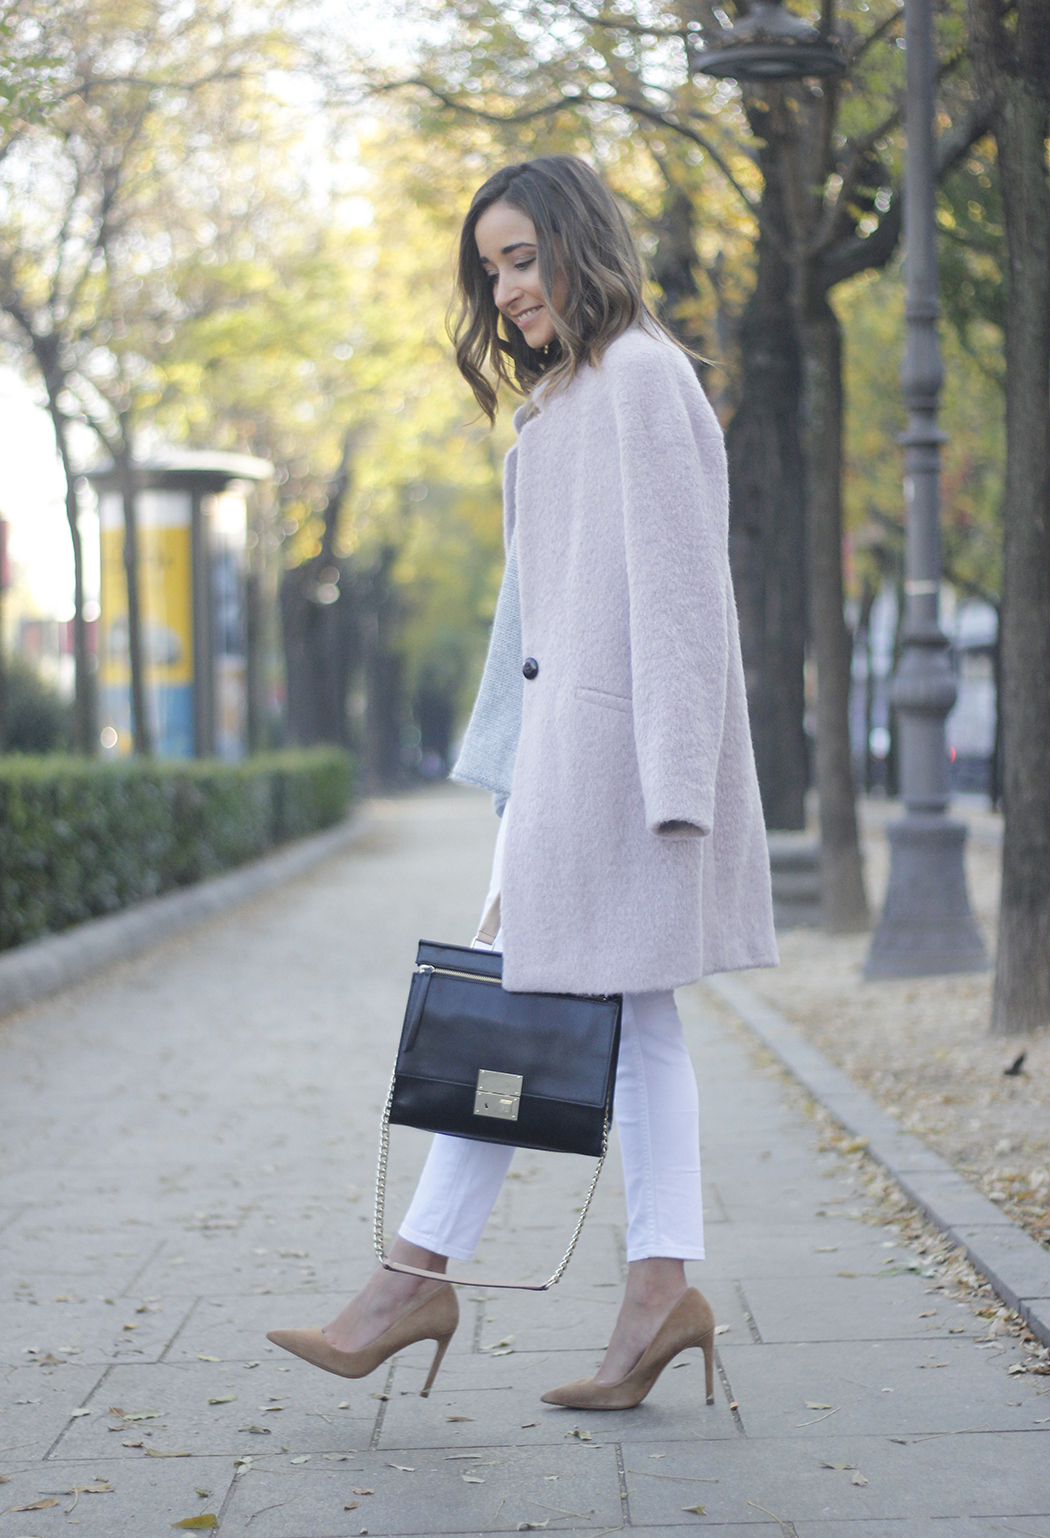 Tintoretto Pink Coat white jeans grey sweater outfit20